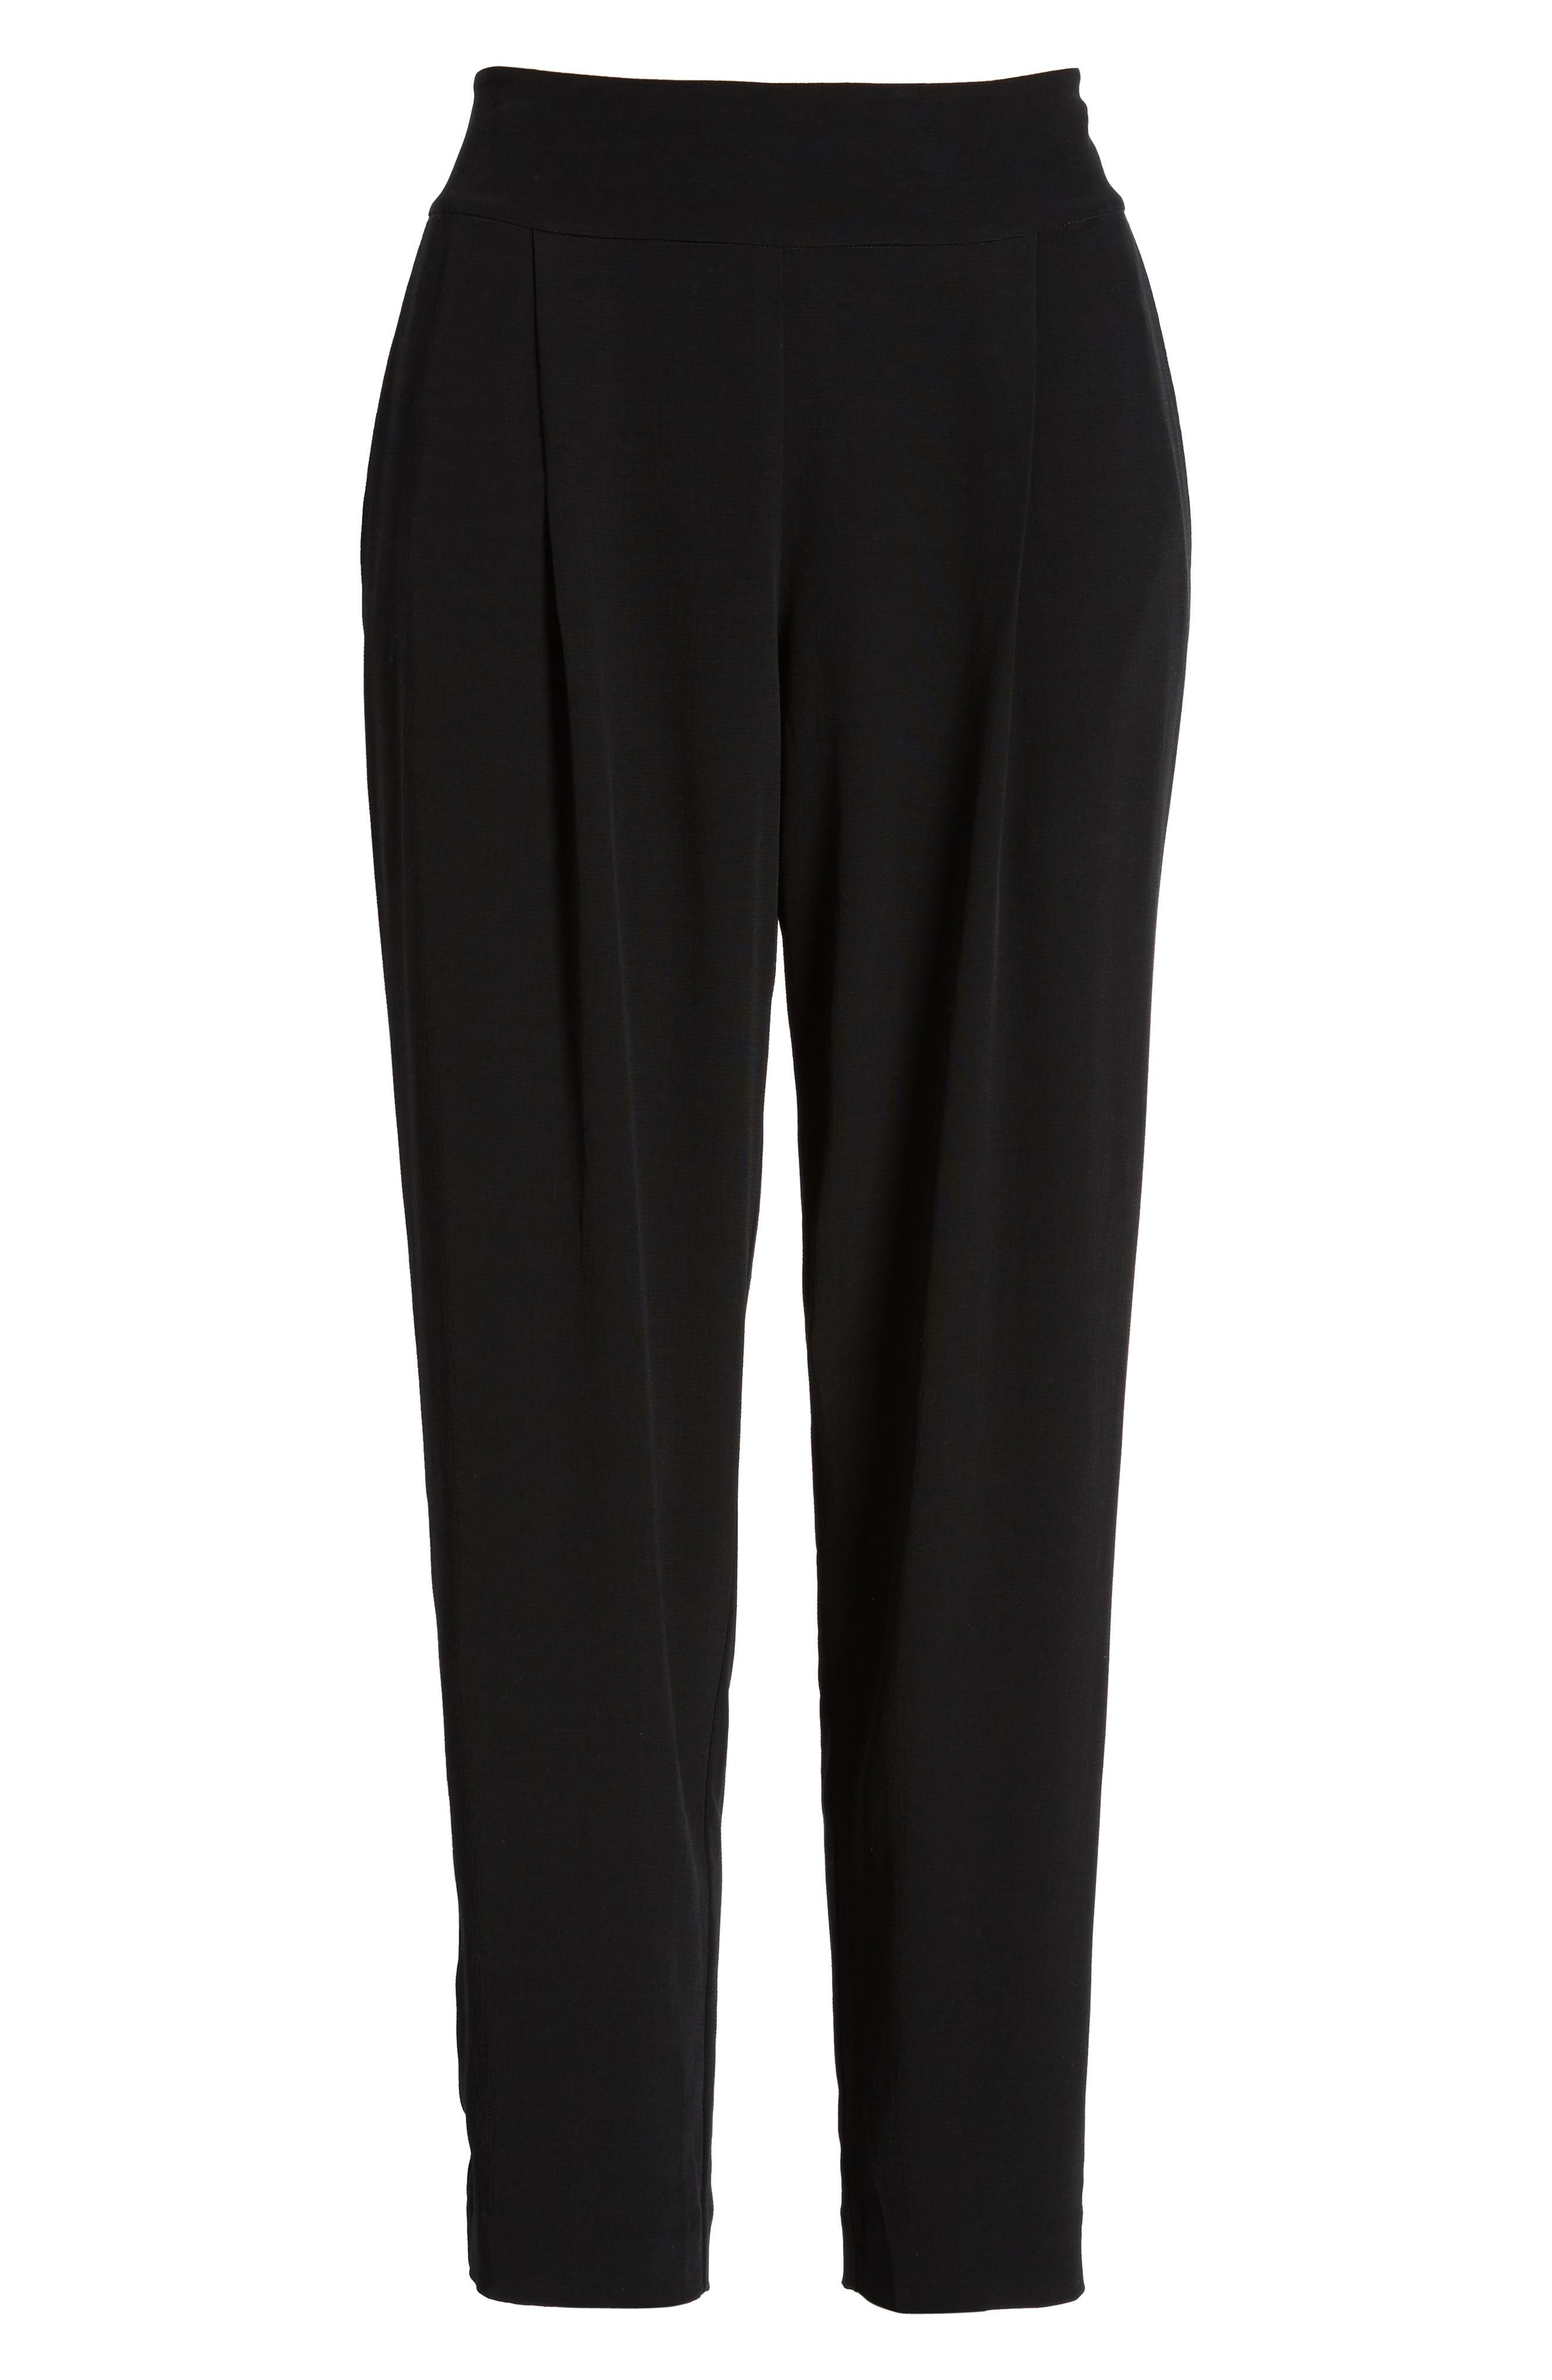 Slouchy Tencel<sup>®</sup> Lyocell Blend Crop Pants,                             Alternate thumbnail 7, color,                             001